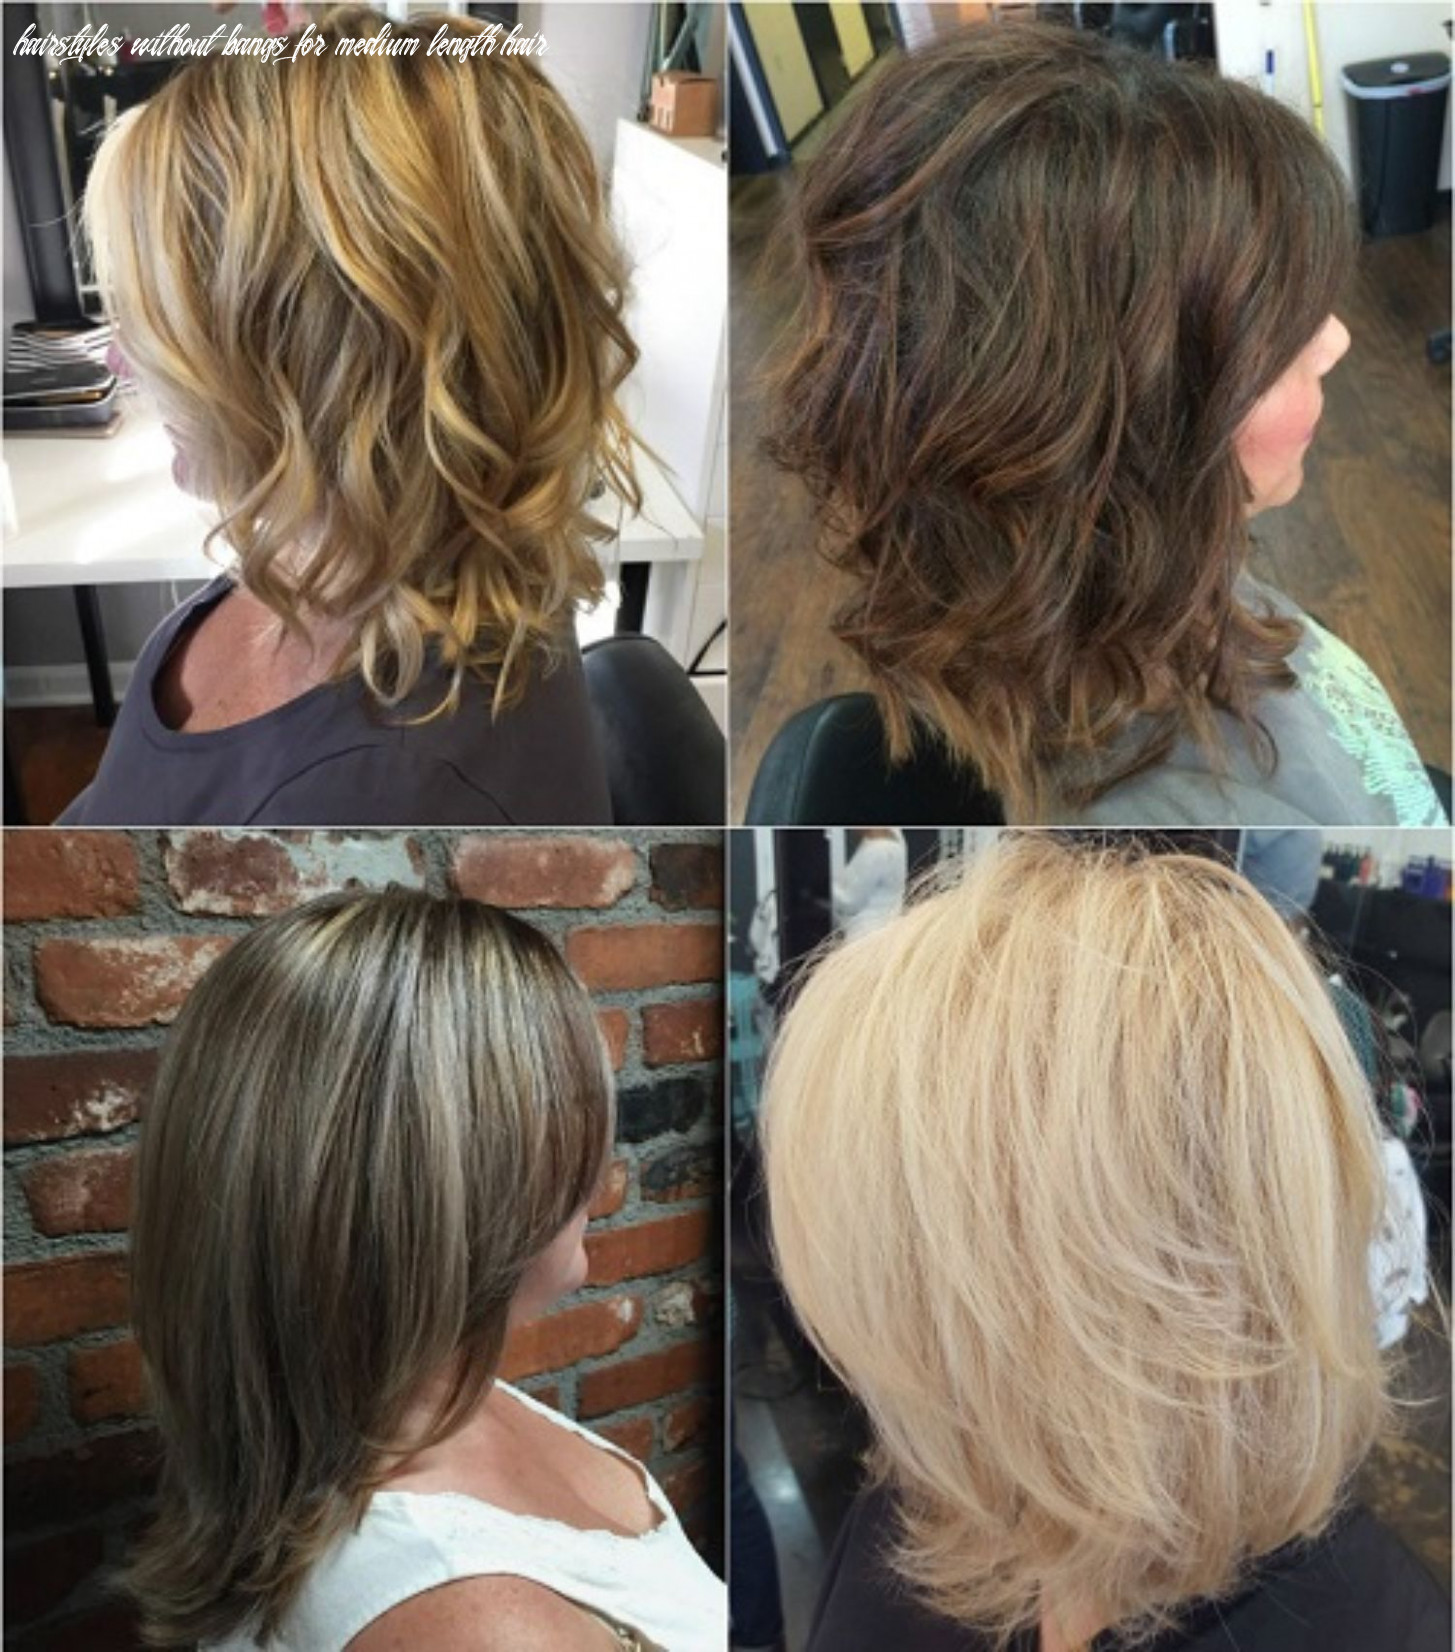 Pin on hair hairstyles without bangs for medium length hair